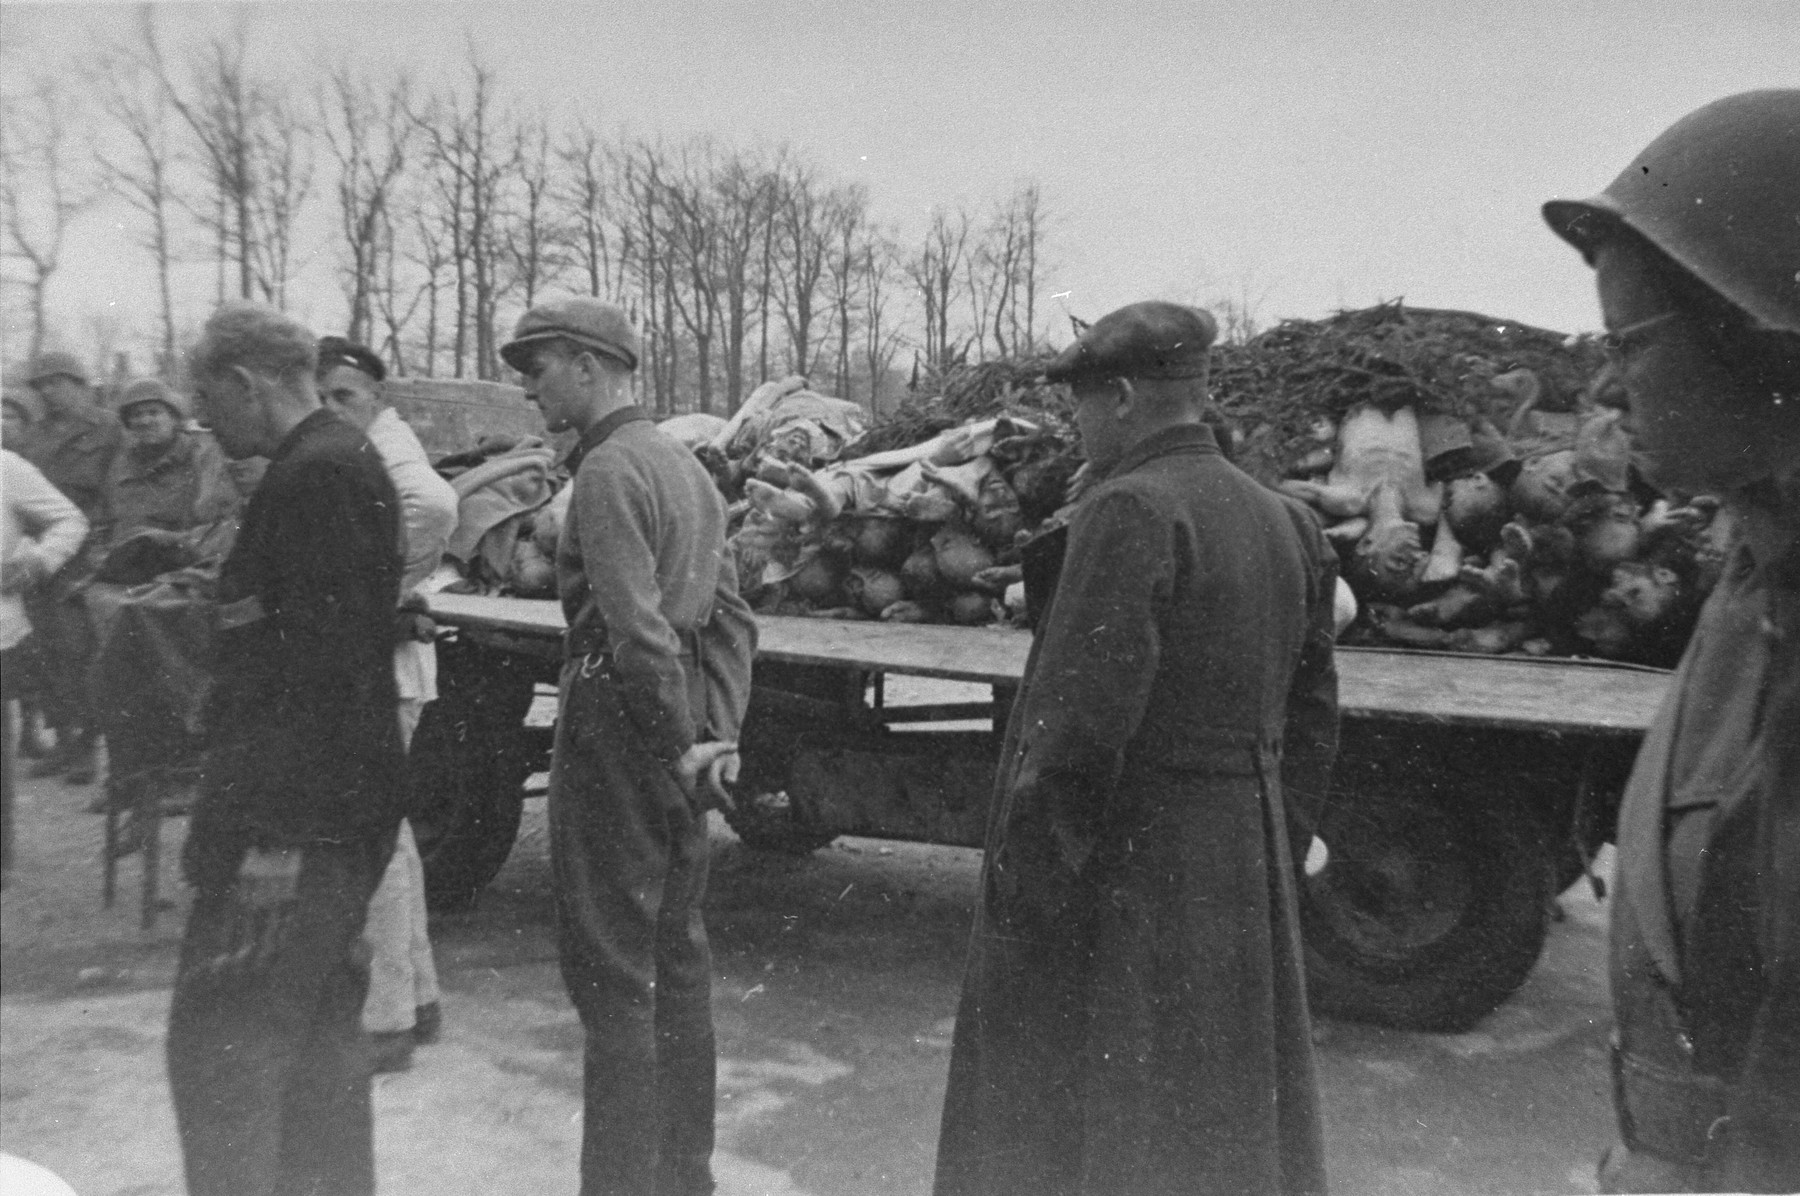 German civilians, who have been forced to tour the newly liberated Buchenwald concentration camp, view a flatbed truck piled with corpses.